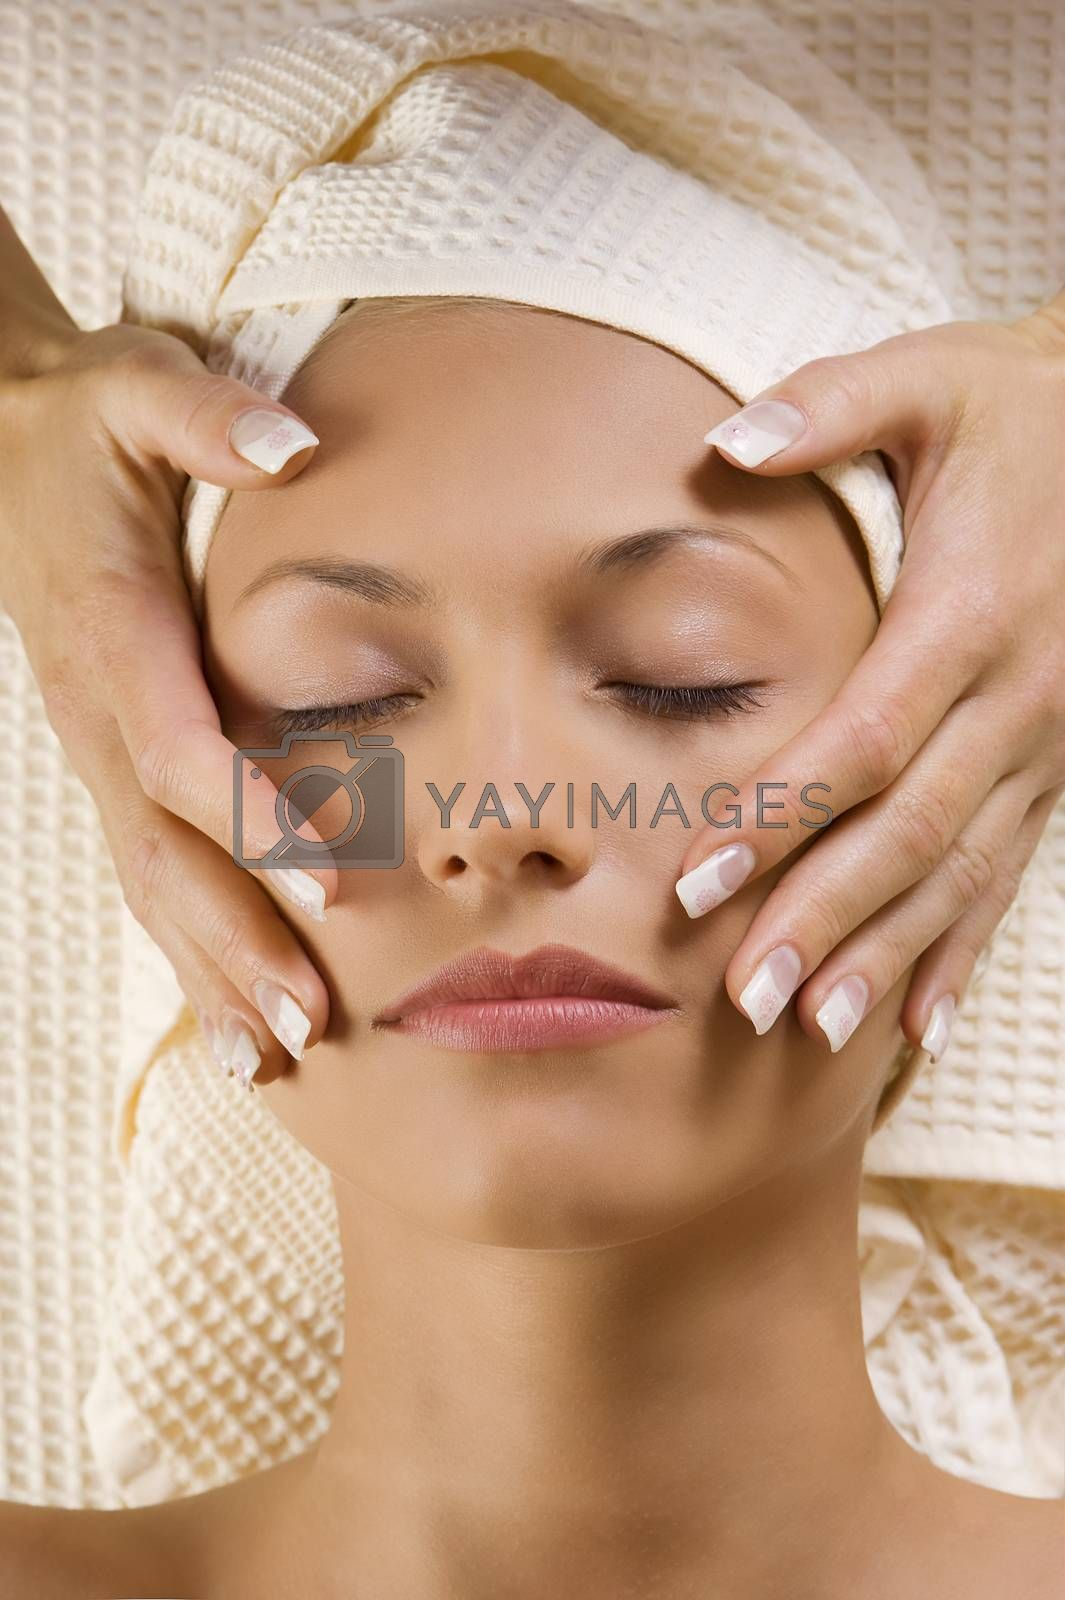 Royalty free image of hands massage near head by fotoCD